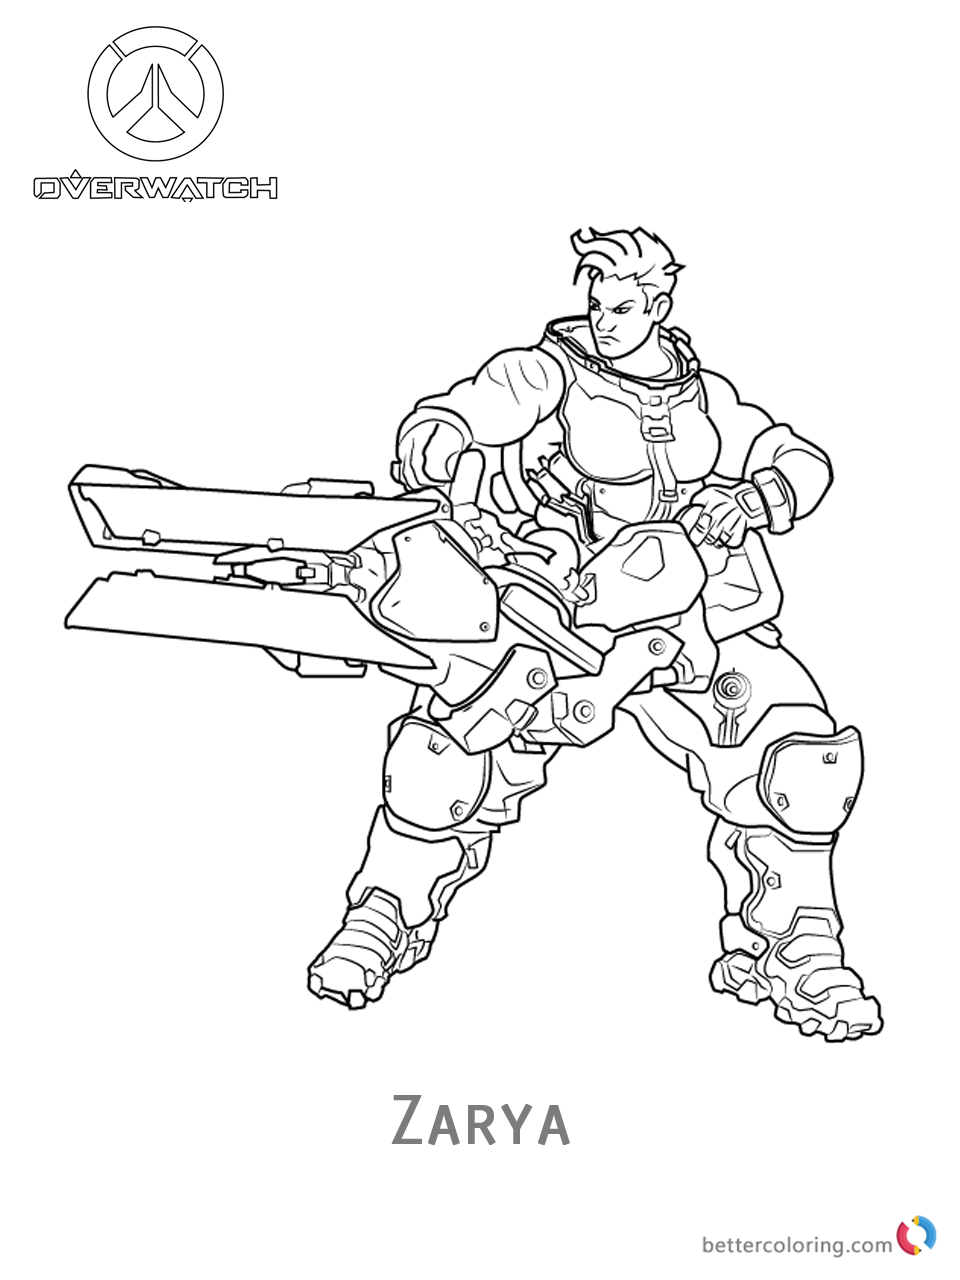 Zarya from Overwatch coloring pages printable